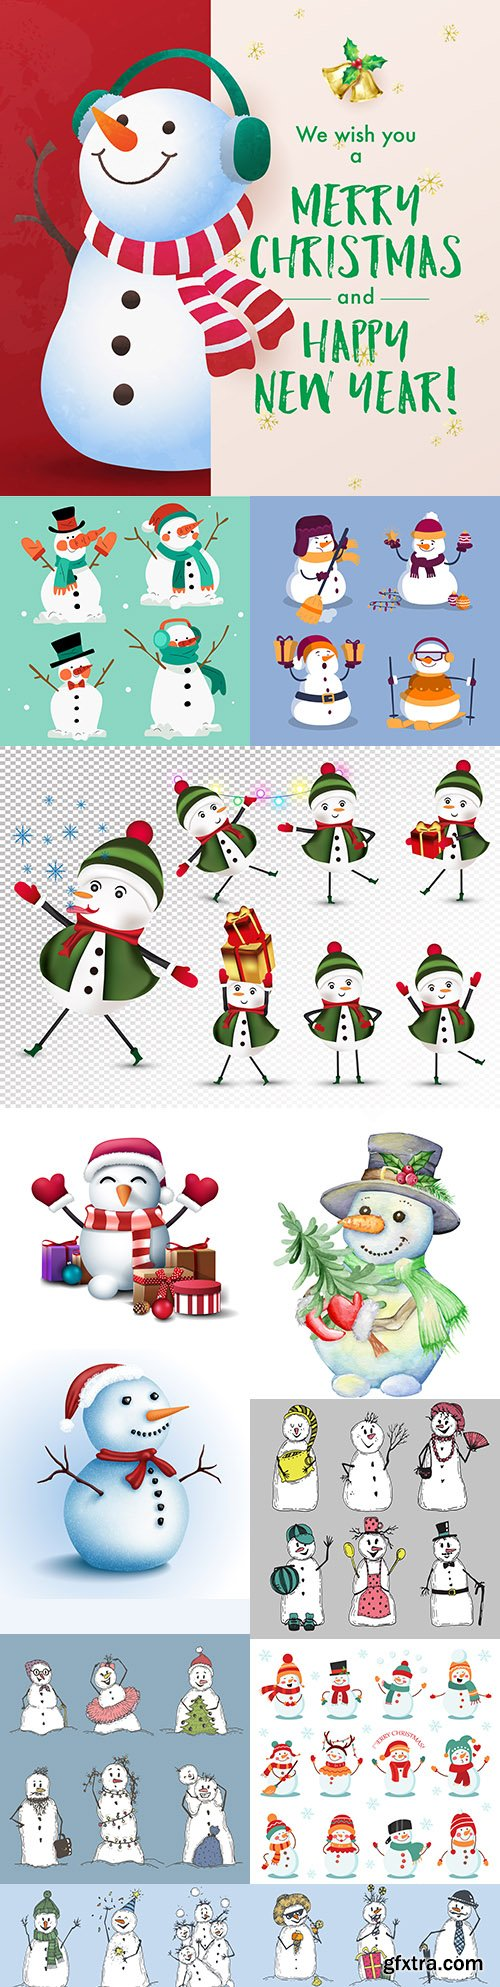 Cheerful snowmen in different costumes Christmas illustrations